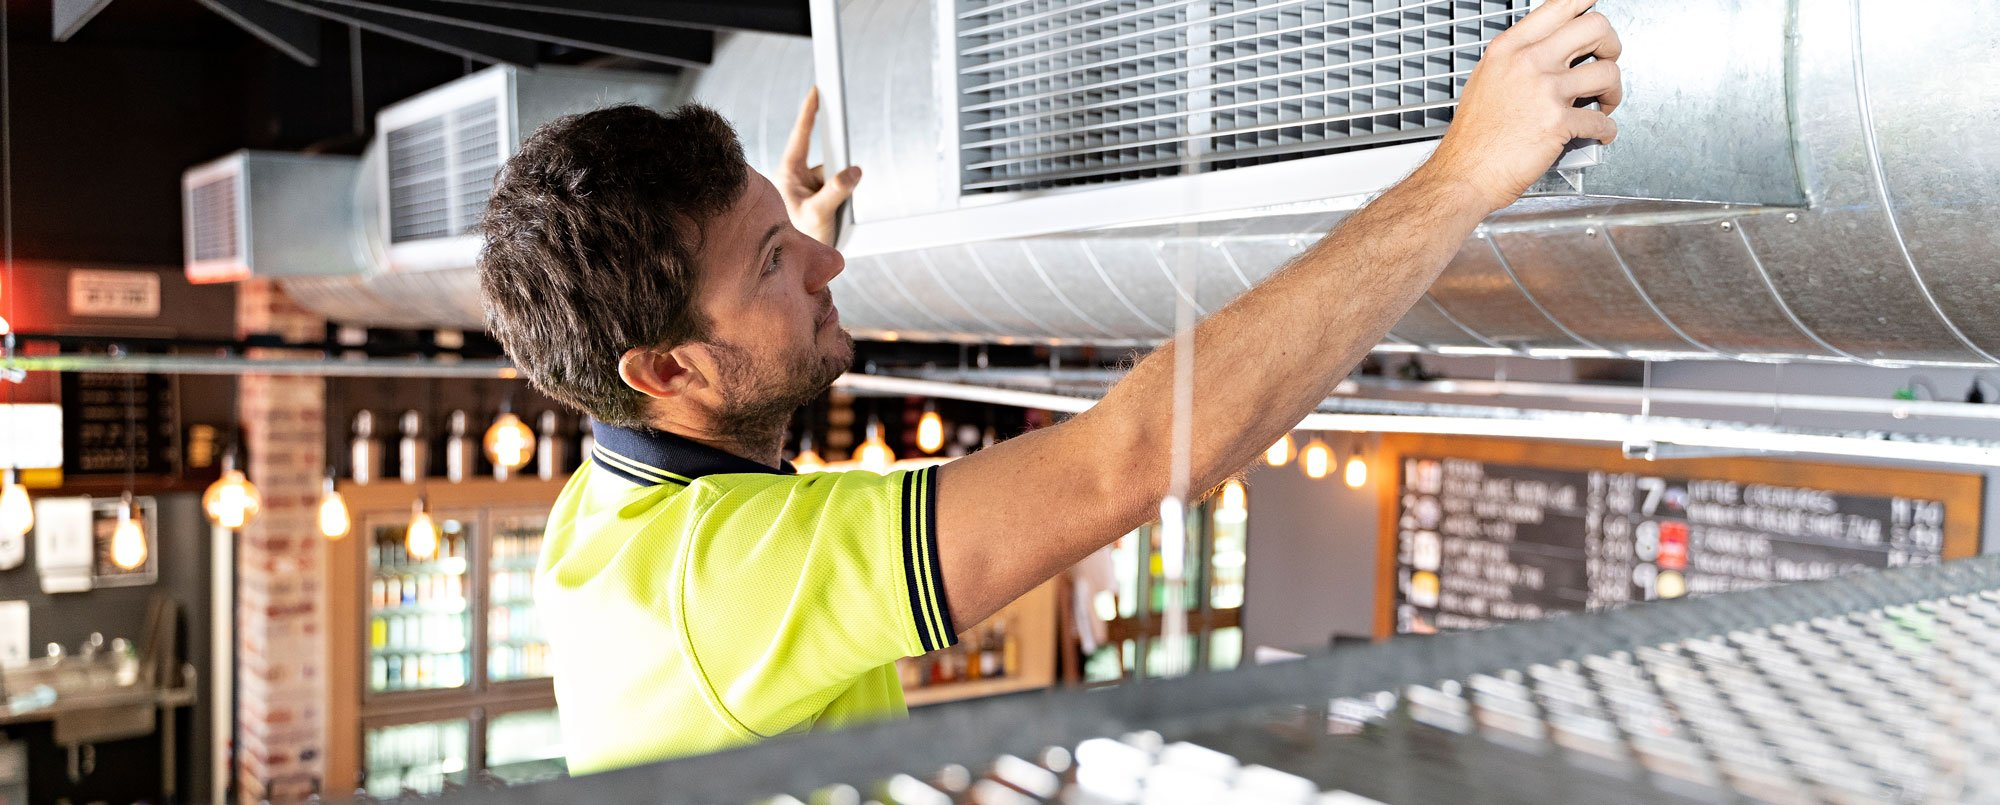 Hospitality Refrigeration and air conditioning